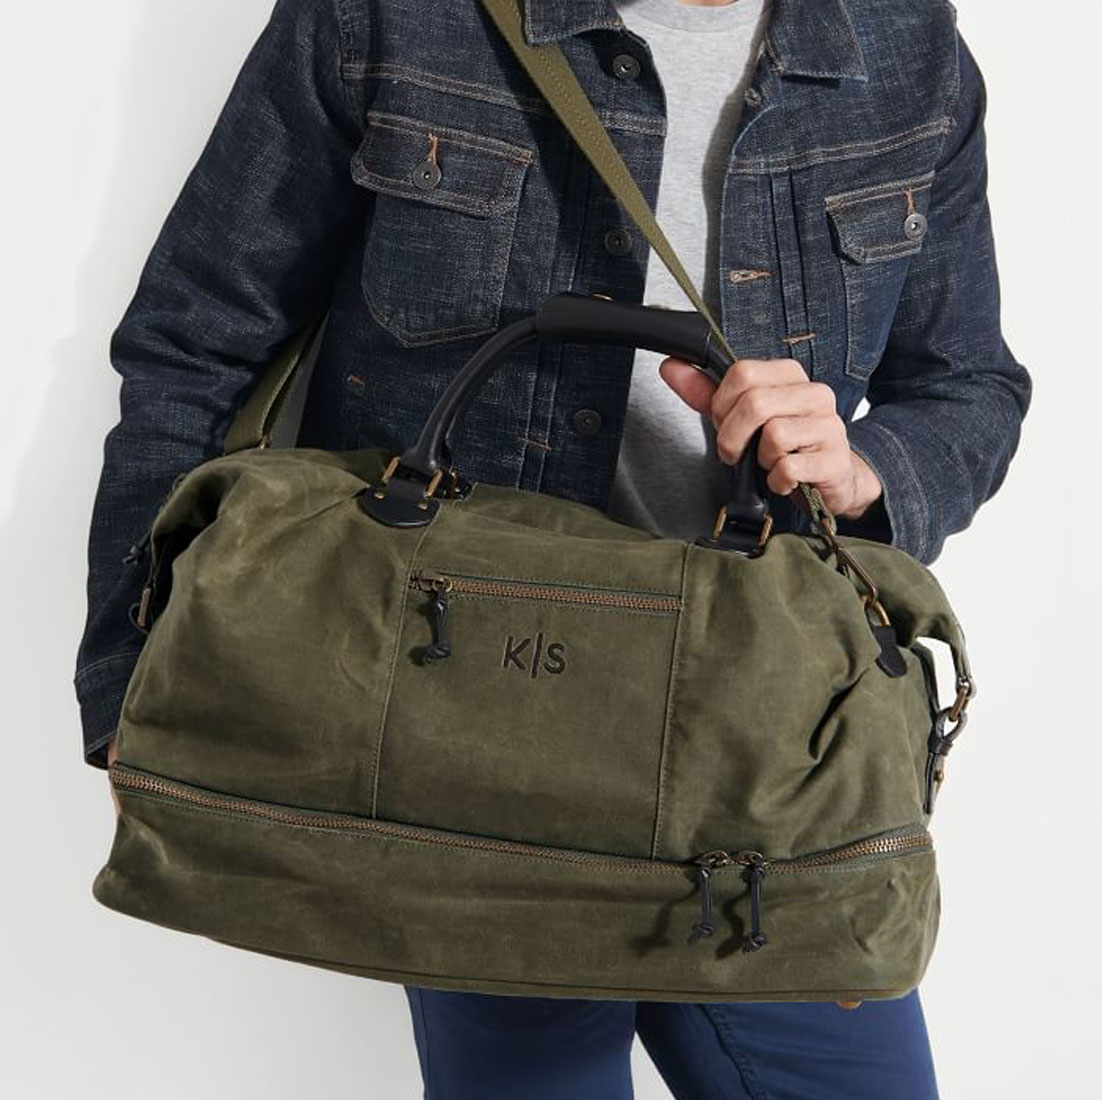 personalized overnighter bag